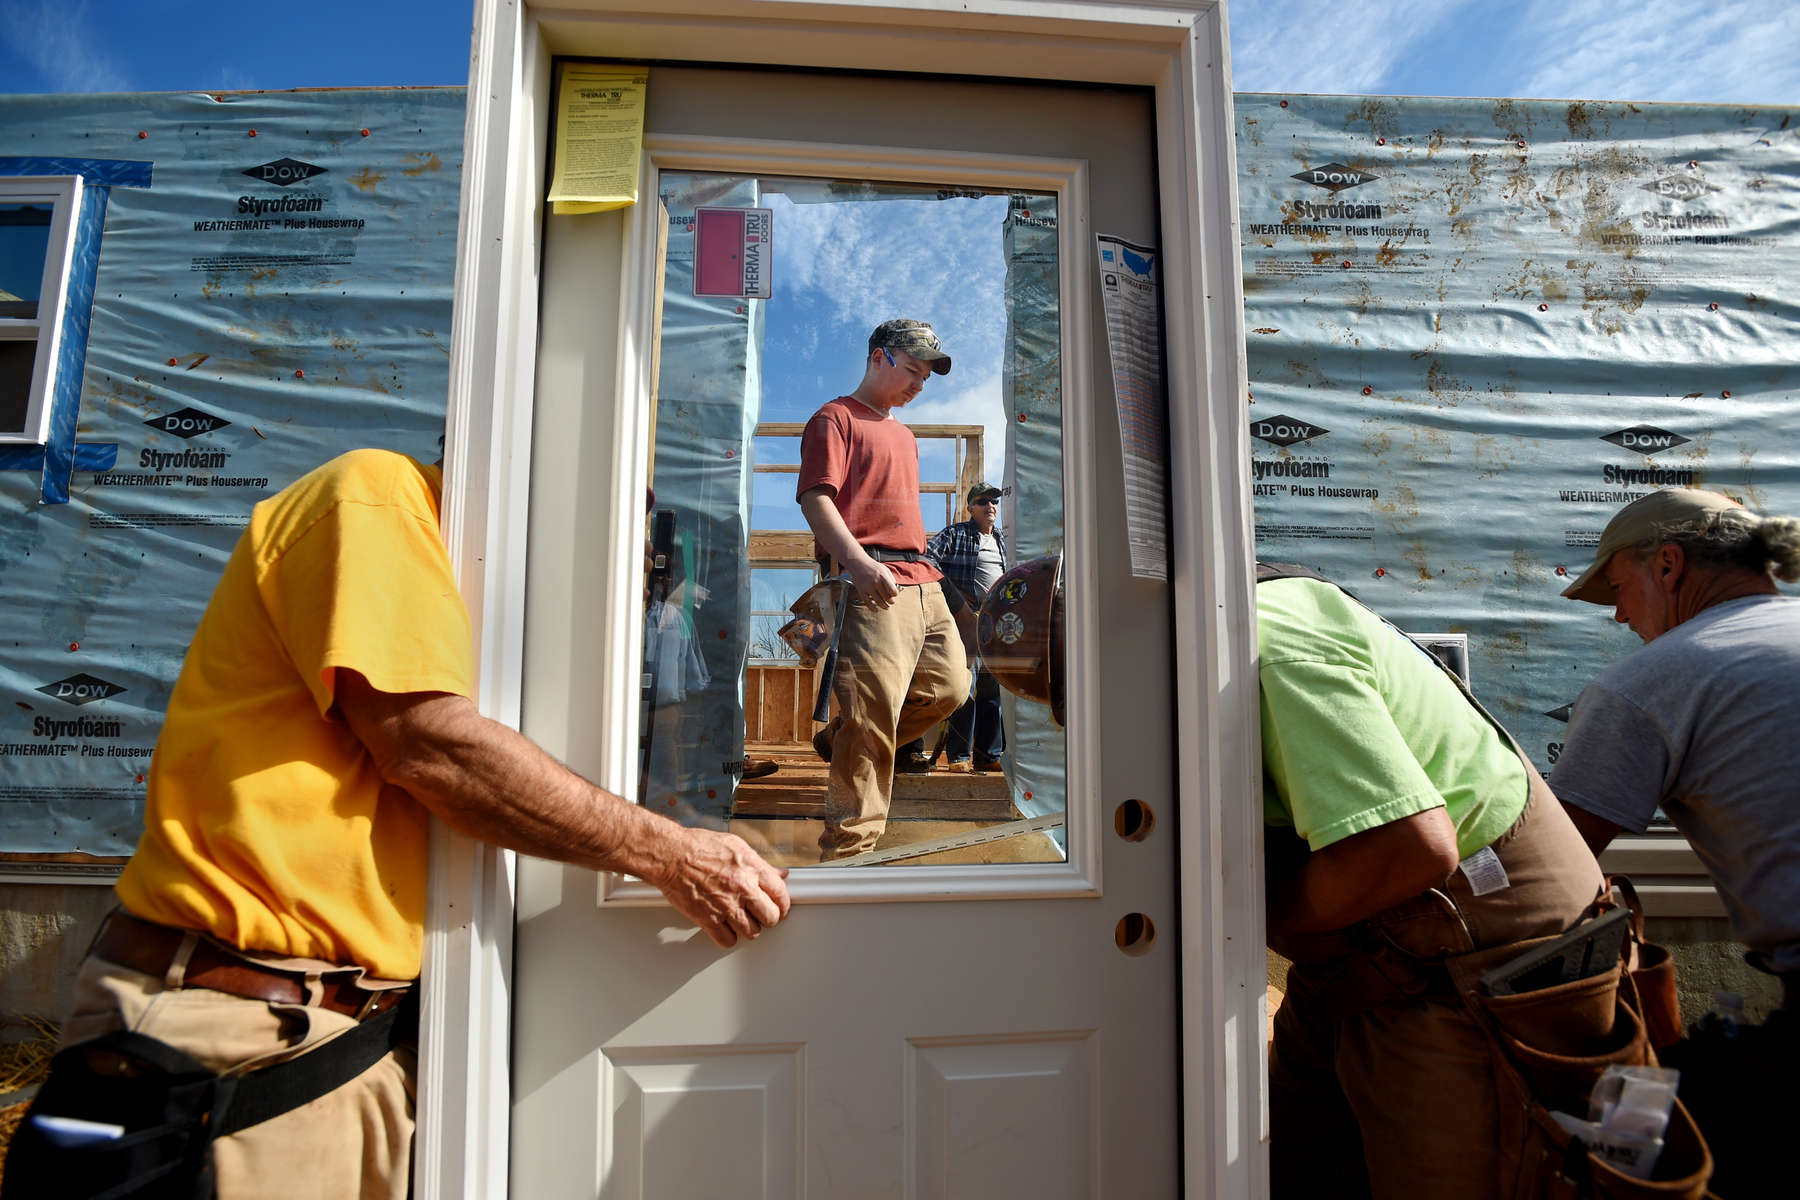 Habitat for Humanity volunteer Jonathan Browning, center, of Amherst, is seen through the window of a door being installed in one of two homes volunteers worked to construct Saturday during a Habitat for Humanity 'Blitz Build' in Altavista.  (Photo by Max Oden/The News & Advance)